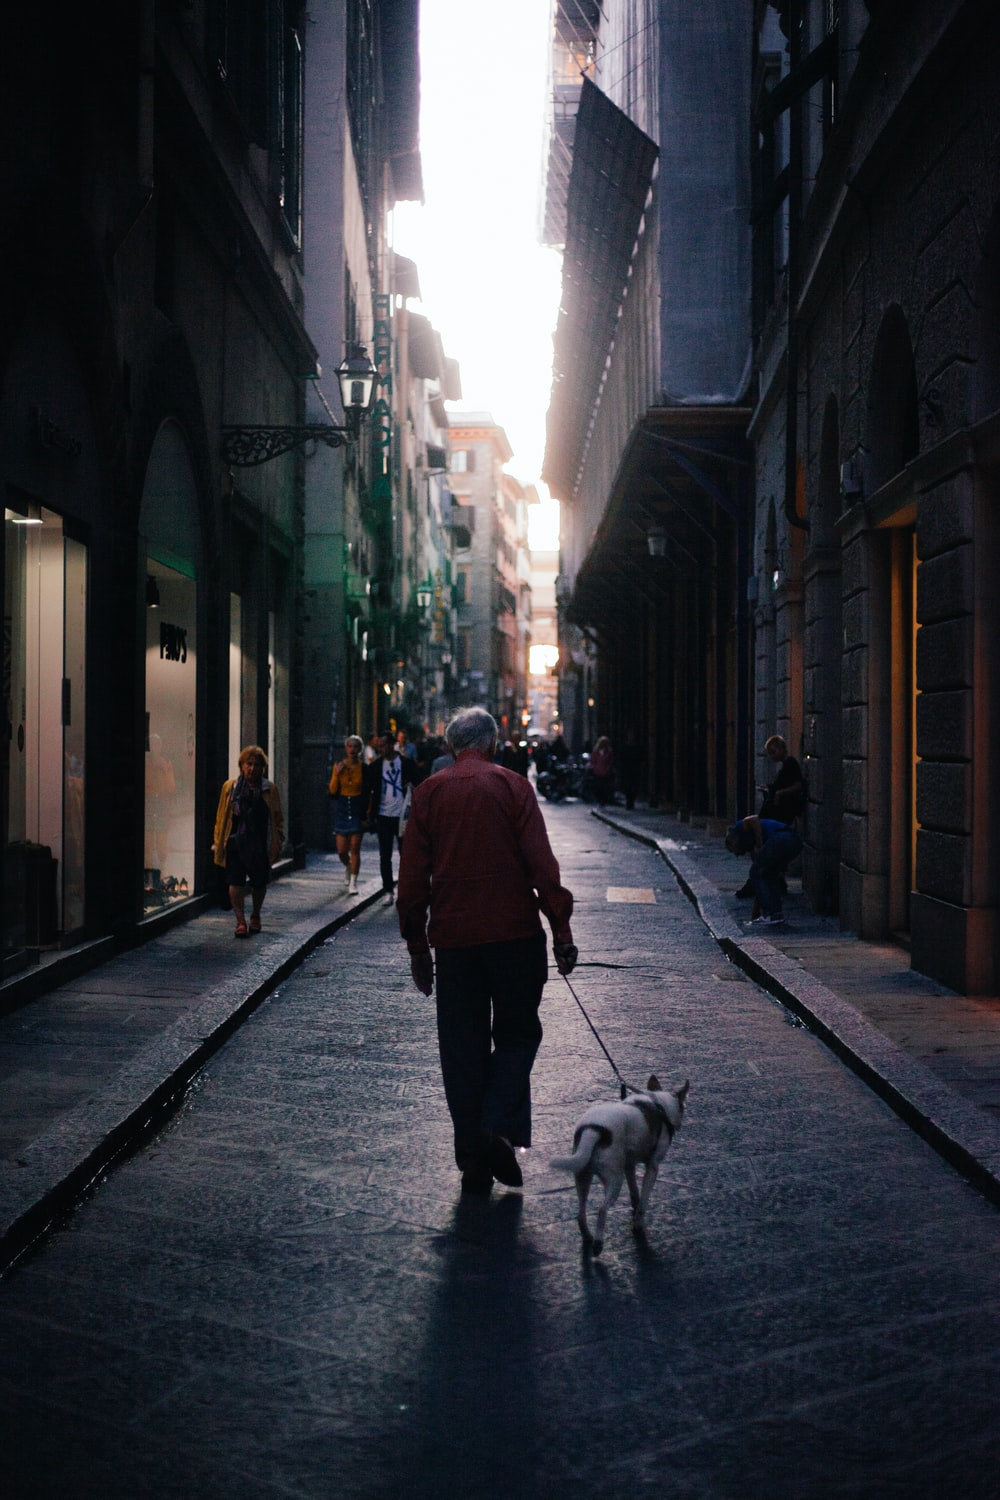 man in red jacket walking on sidewalk with white short coat small dog during daytime